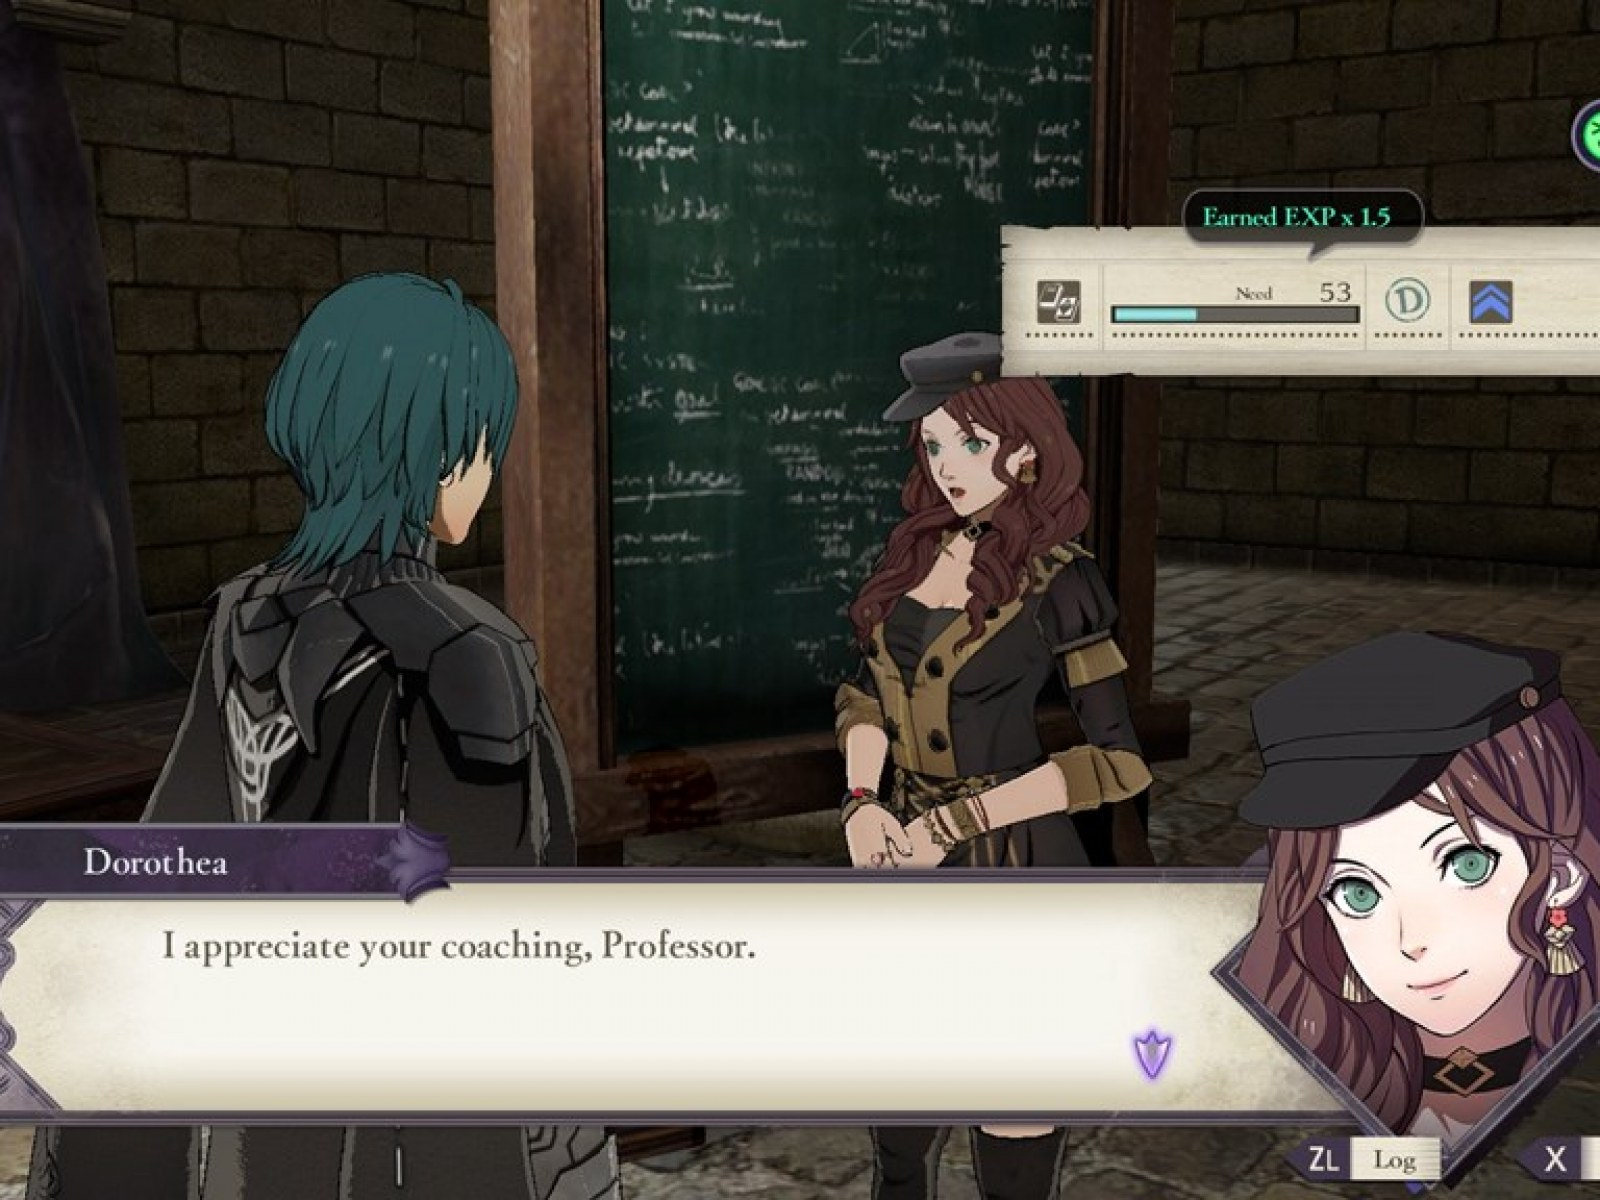 Fire Emblem: Three Houses Answers Guide to Student Questions After Lectures